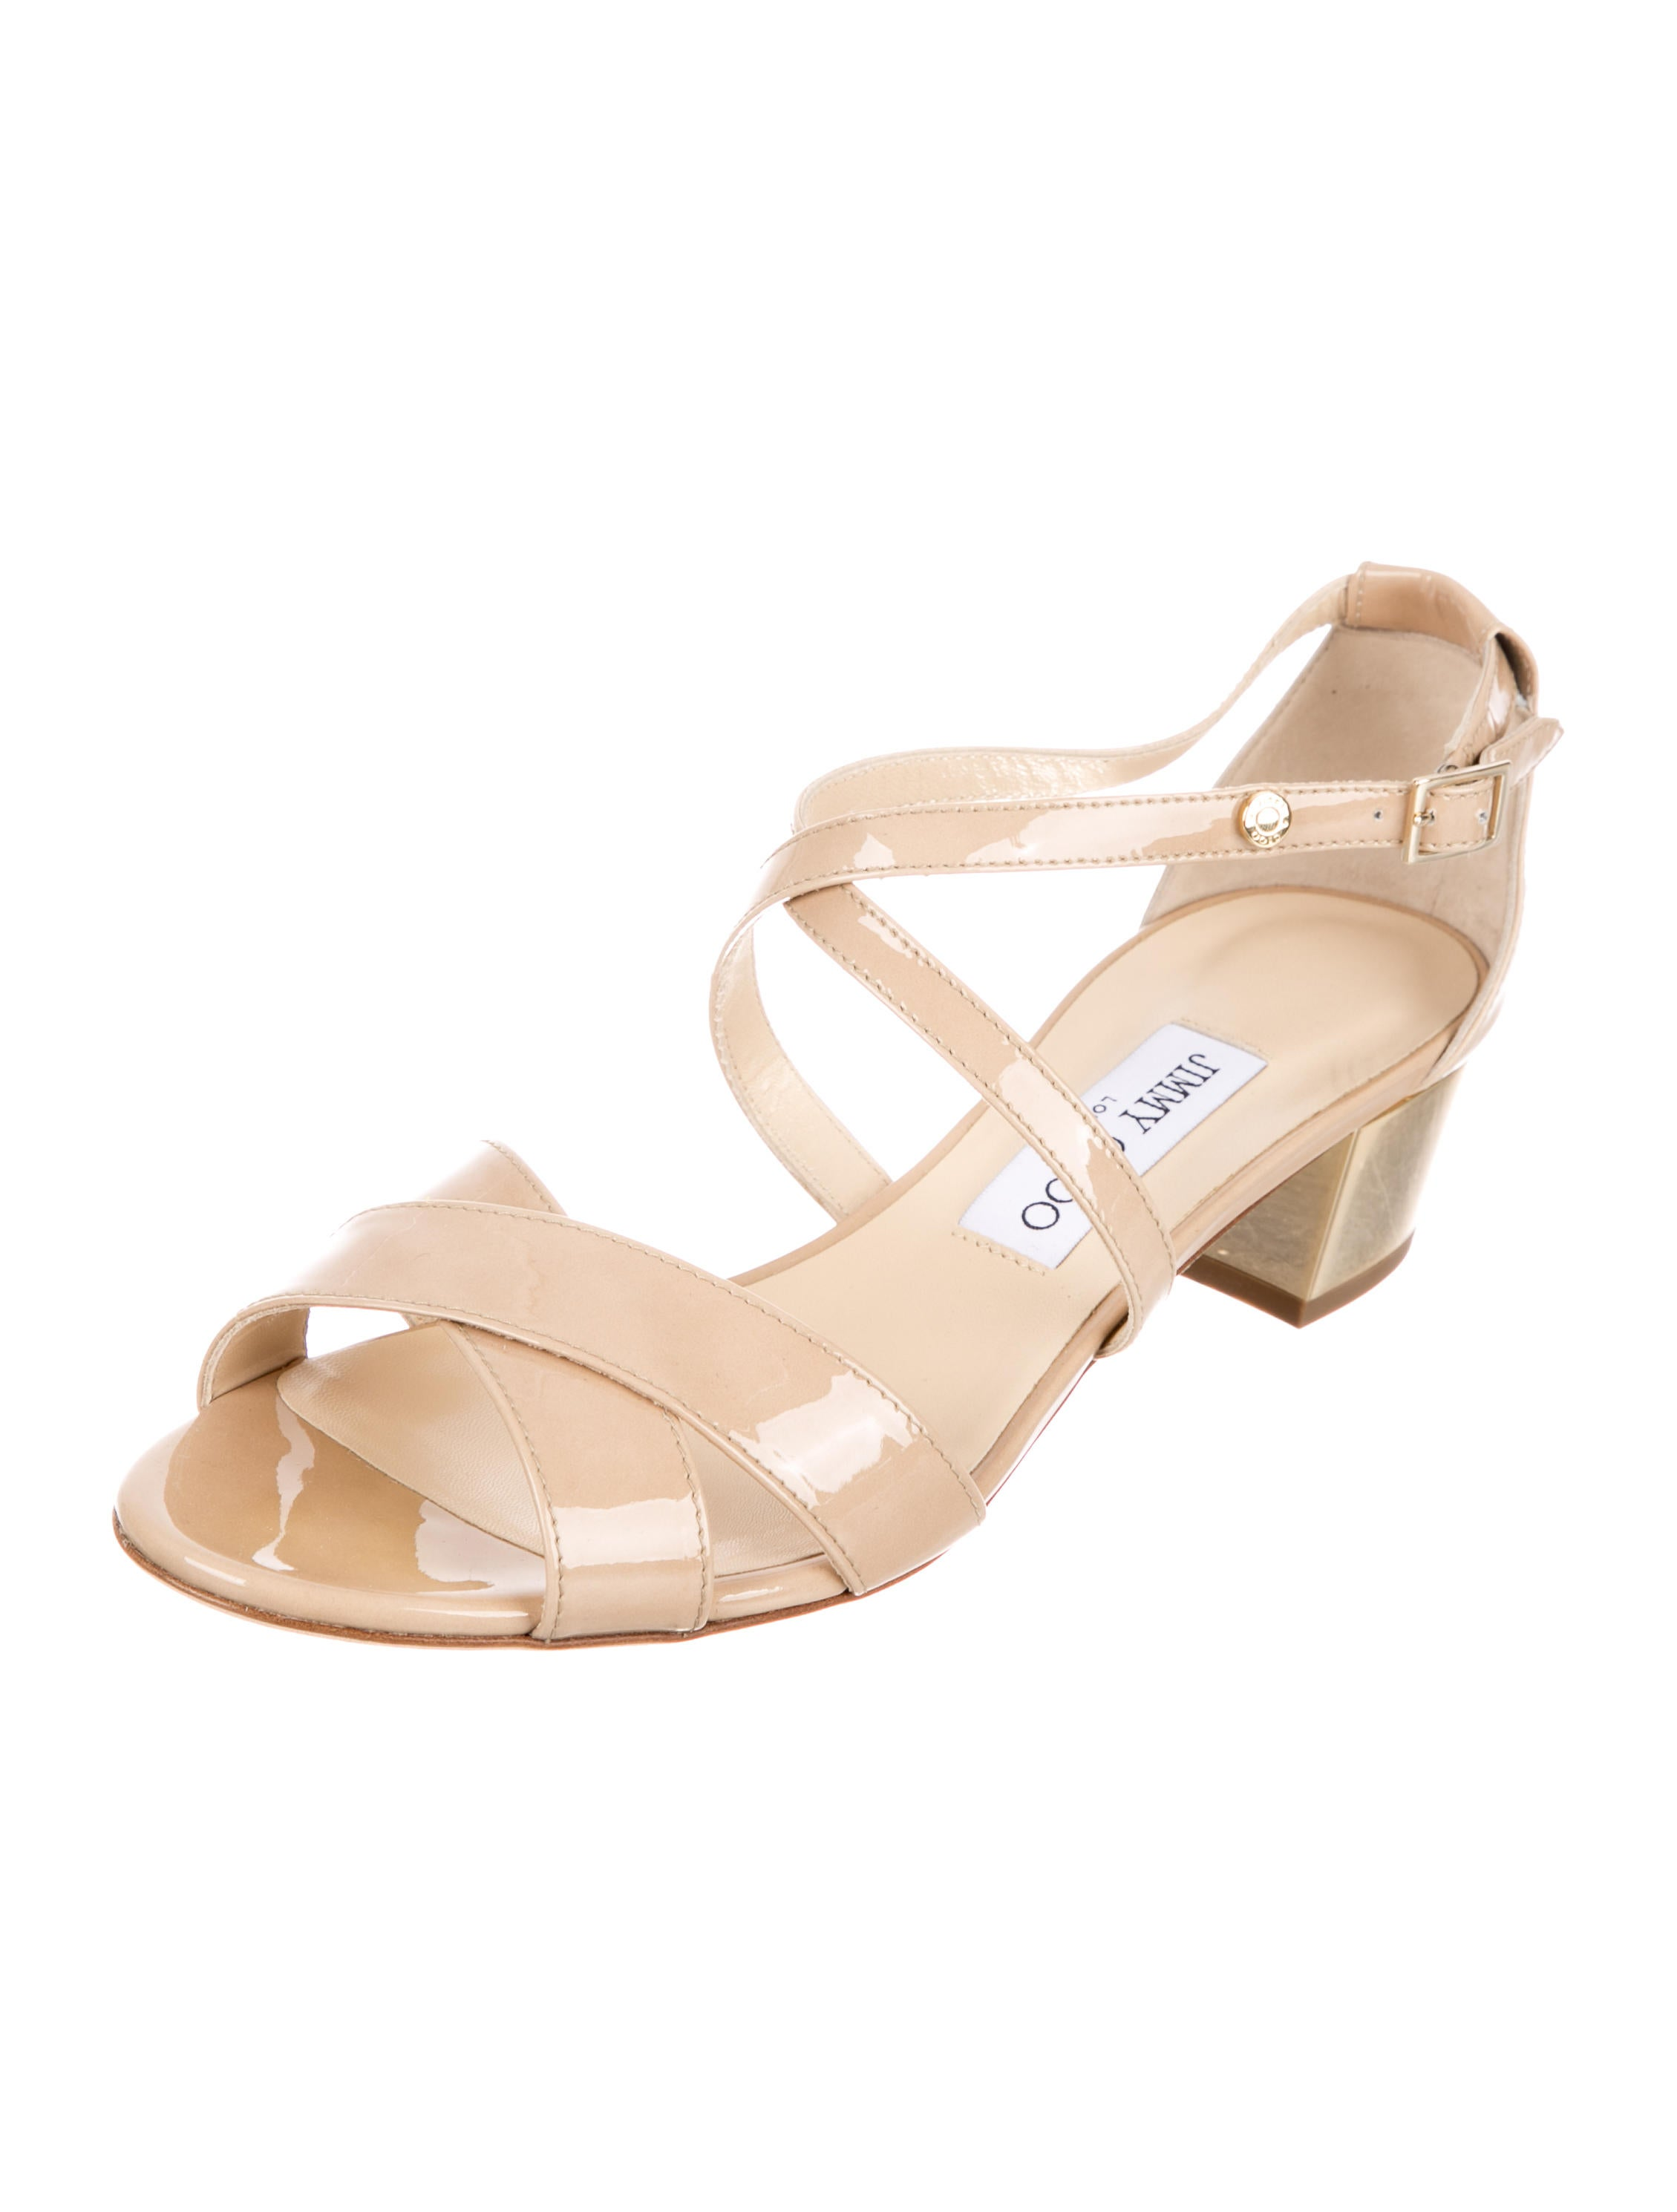 Jimmy Choo Merit Patent Leather Sandals w/ Tags cheap sale 2014 unisex lowest price for sale cheap sale shop offer cheap sale purchase VpRghaIJ